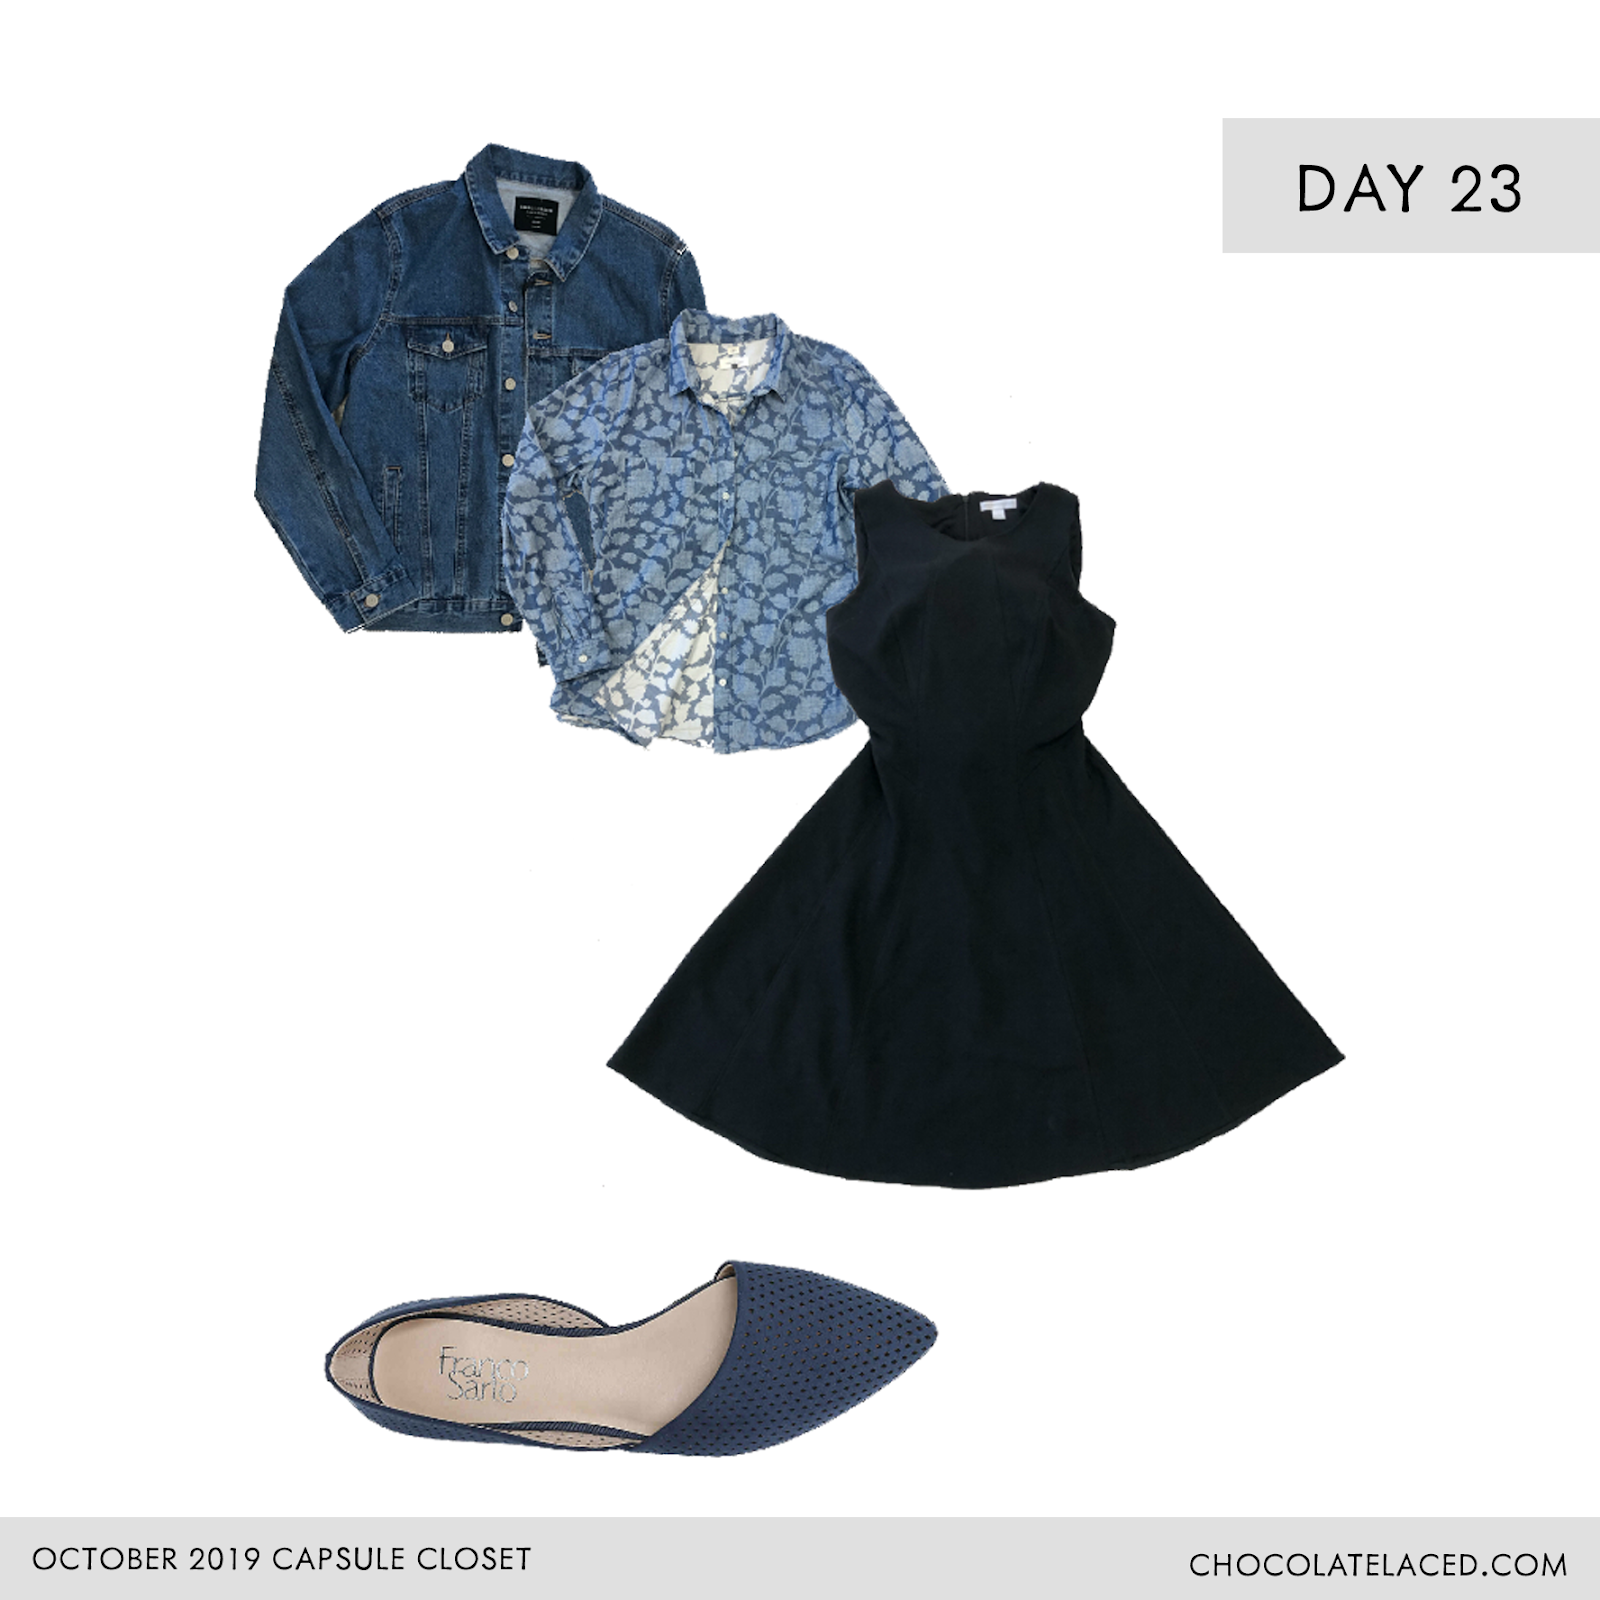 Denim jacket, chambray top, floral top, little black dress, d'Orsay flats